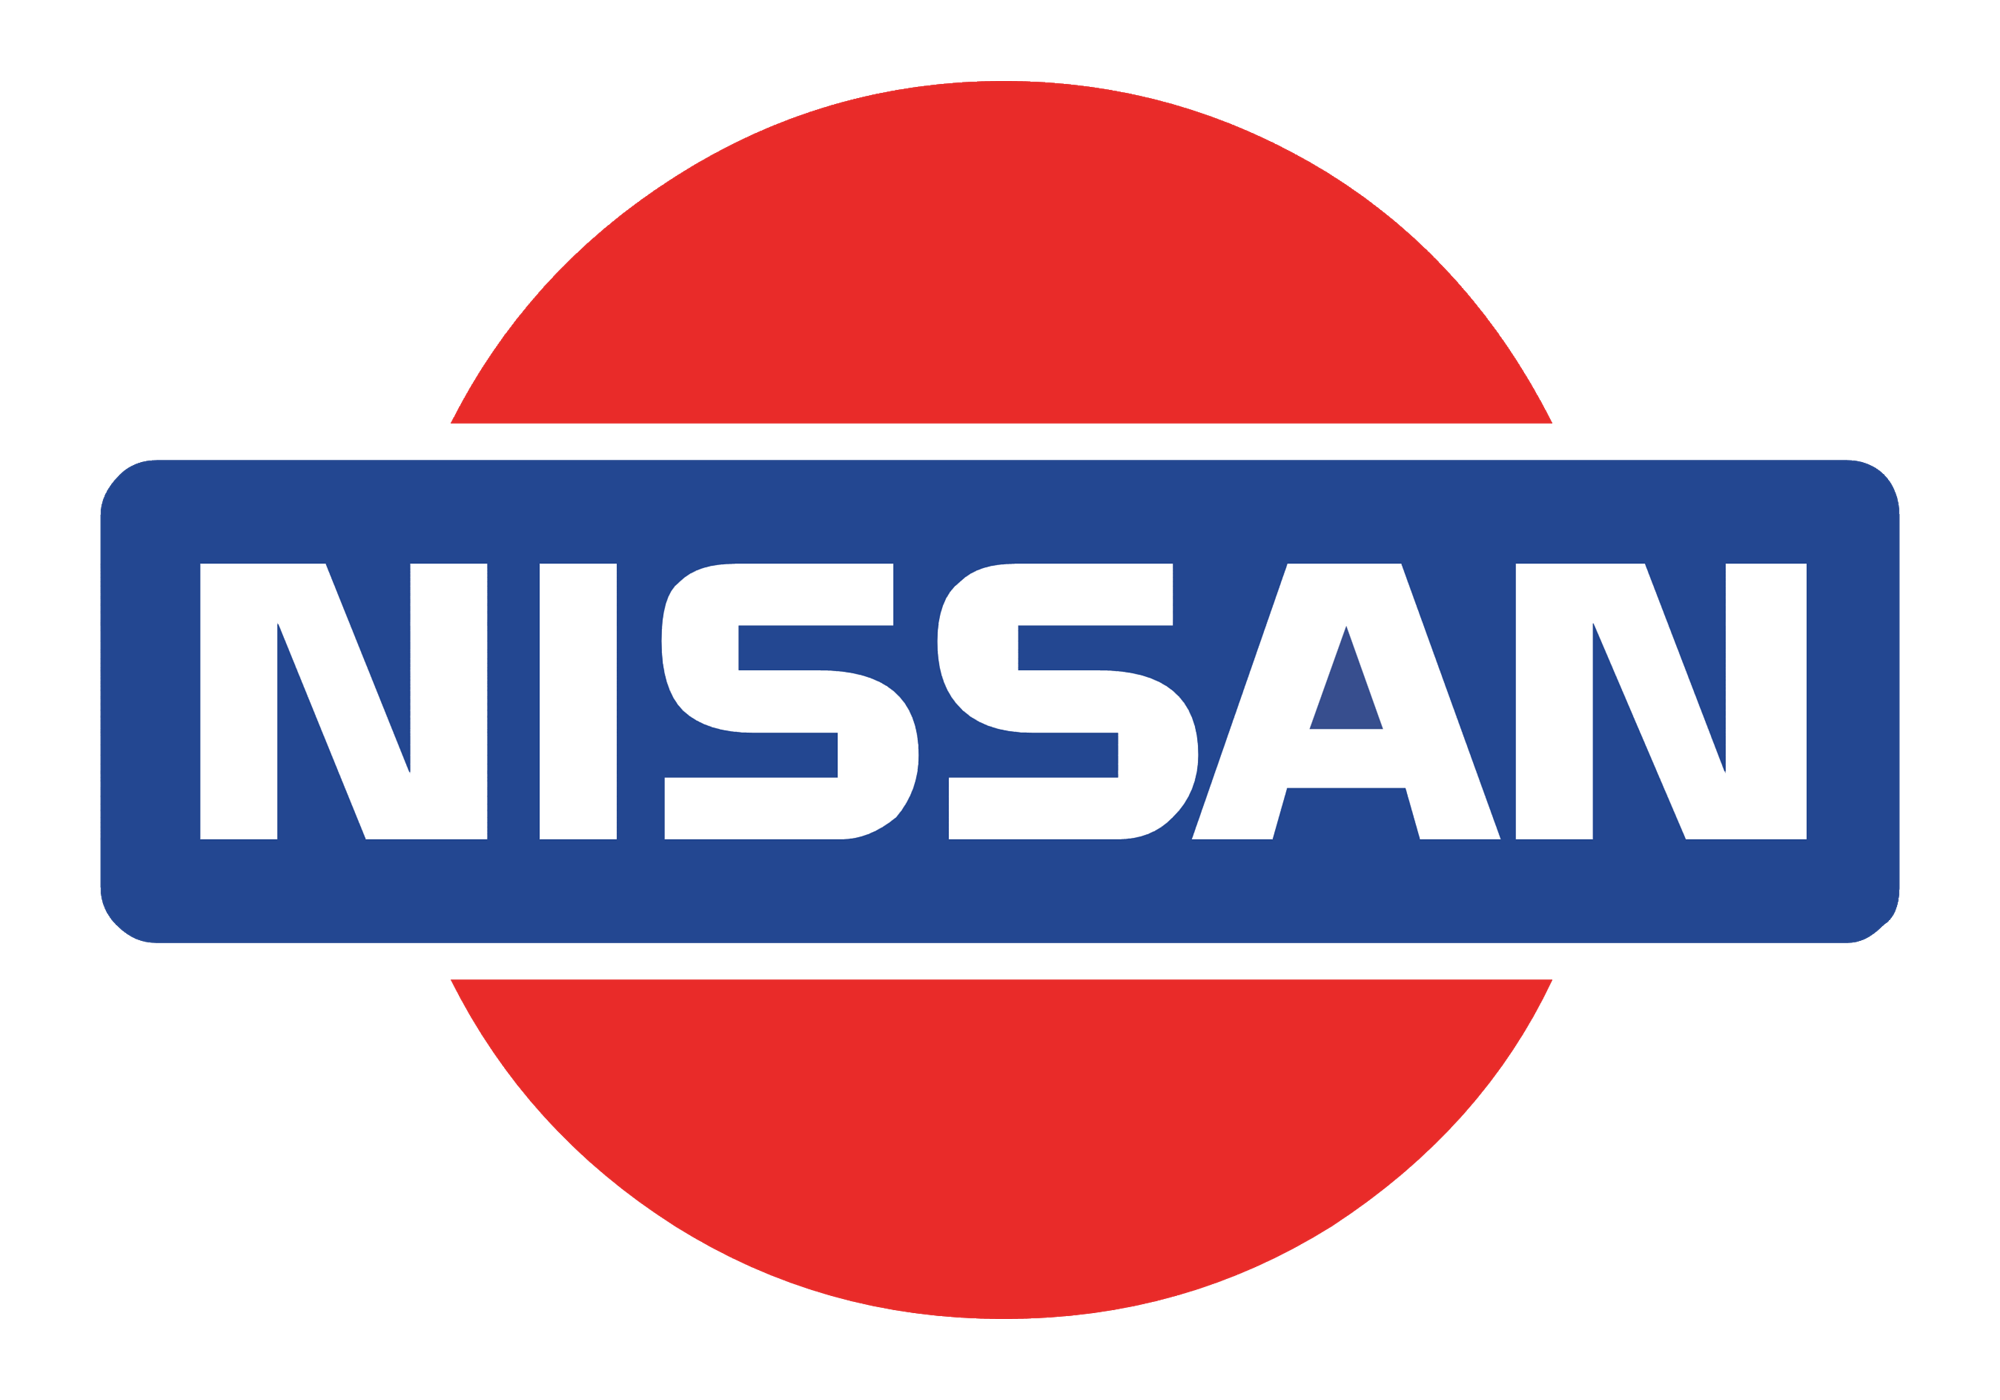 Nissan Logo Hd Png Meaning Information